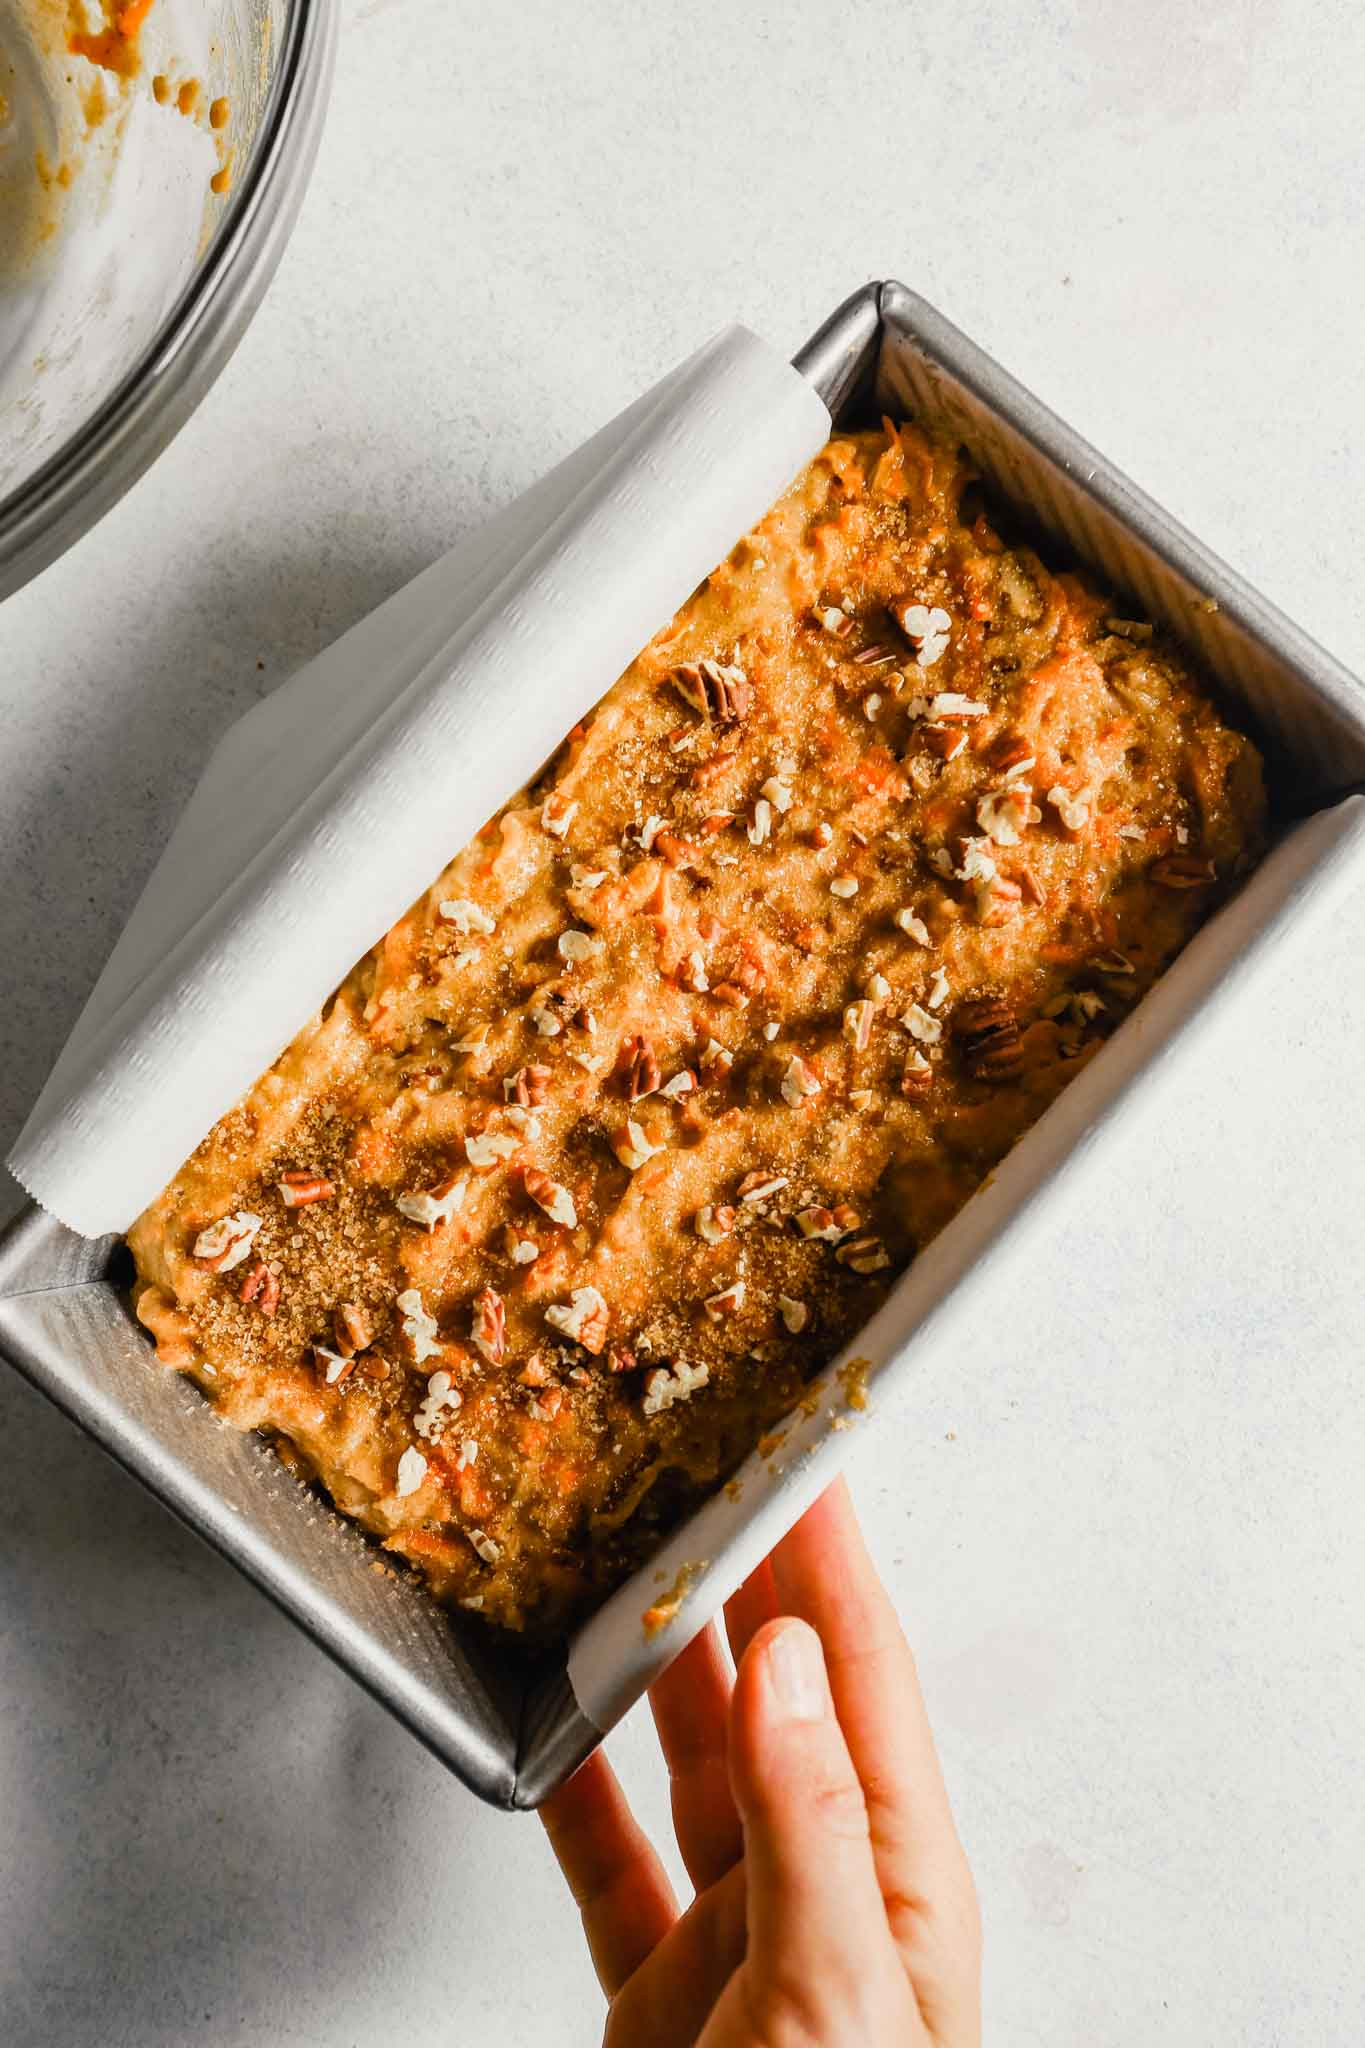 Photograph of carrot bread batter, topped with turbinado sugar and pecans, in a loaf pan